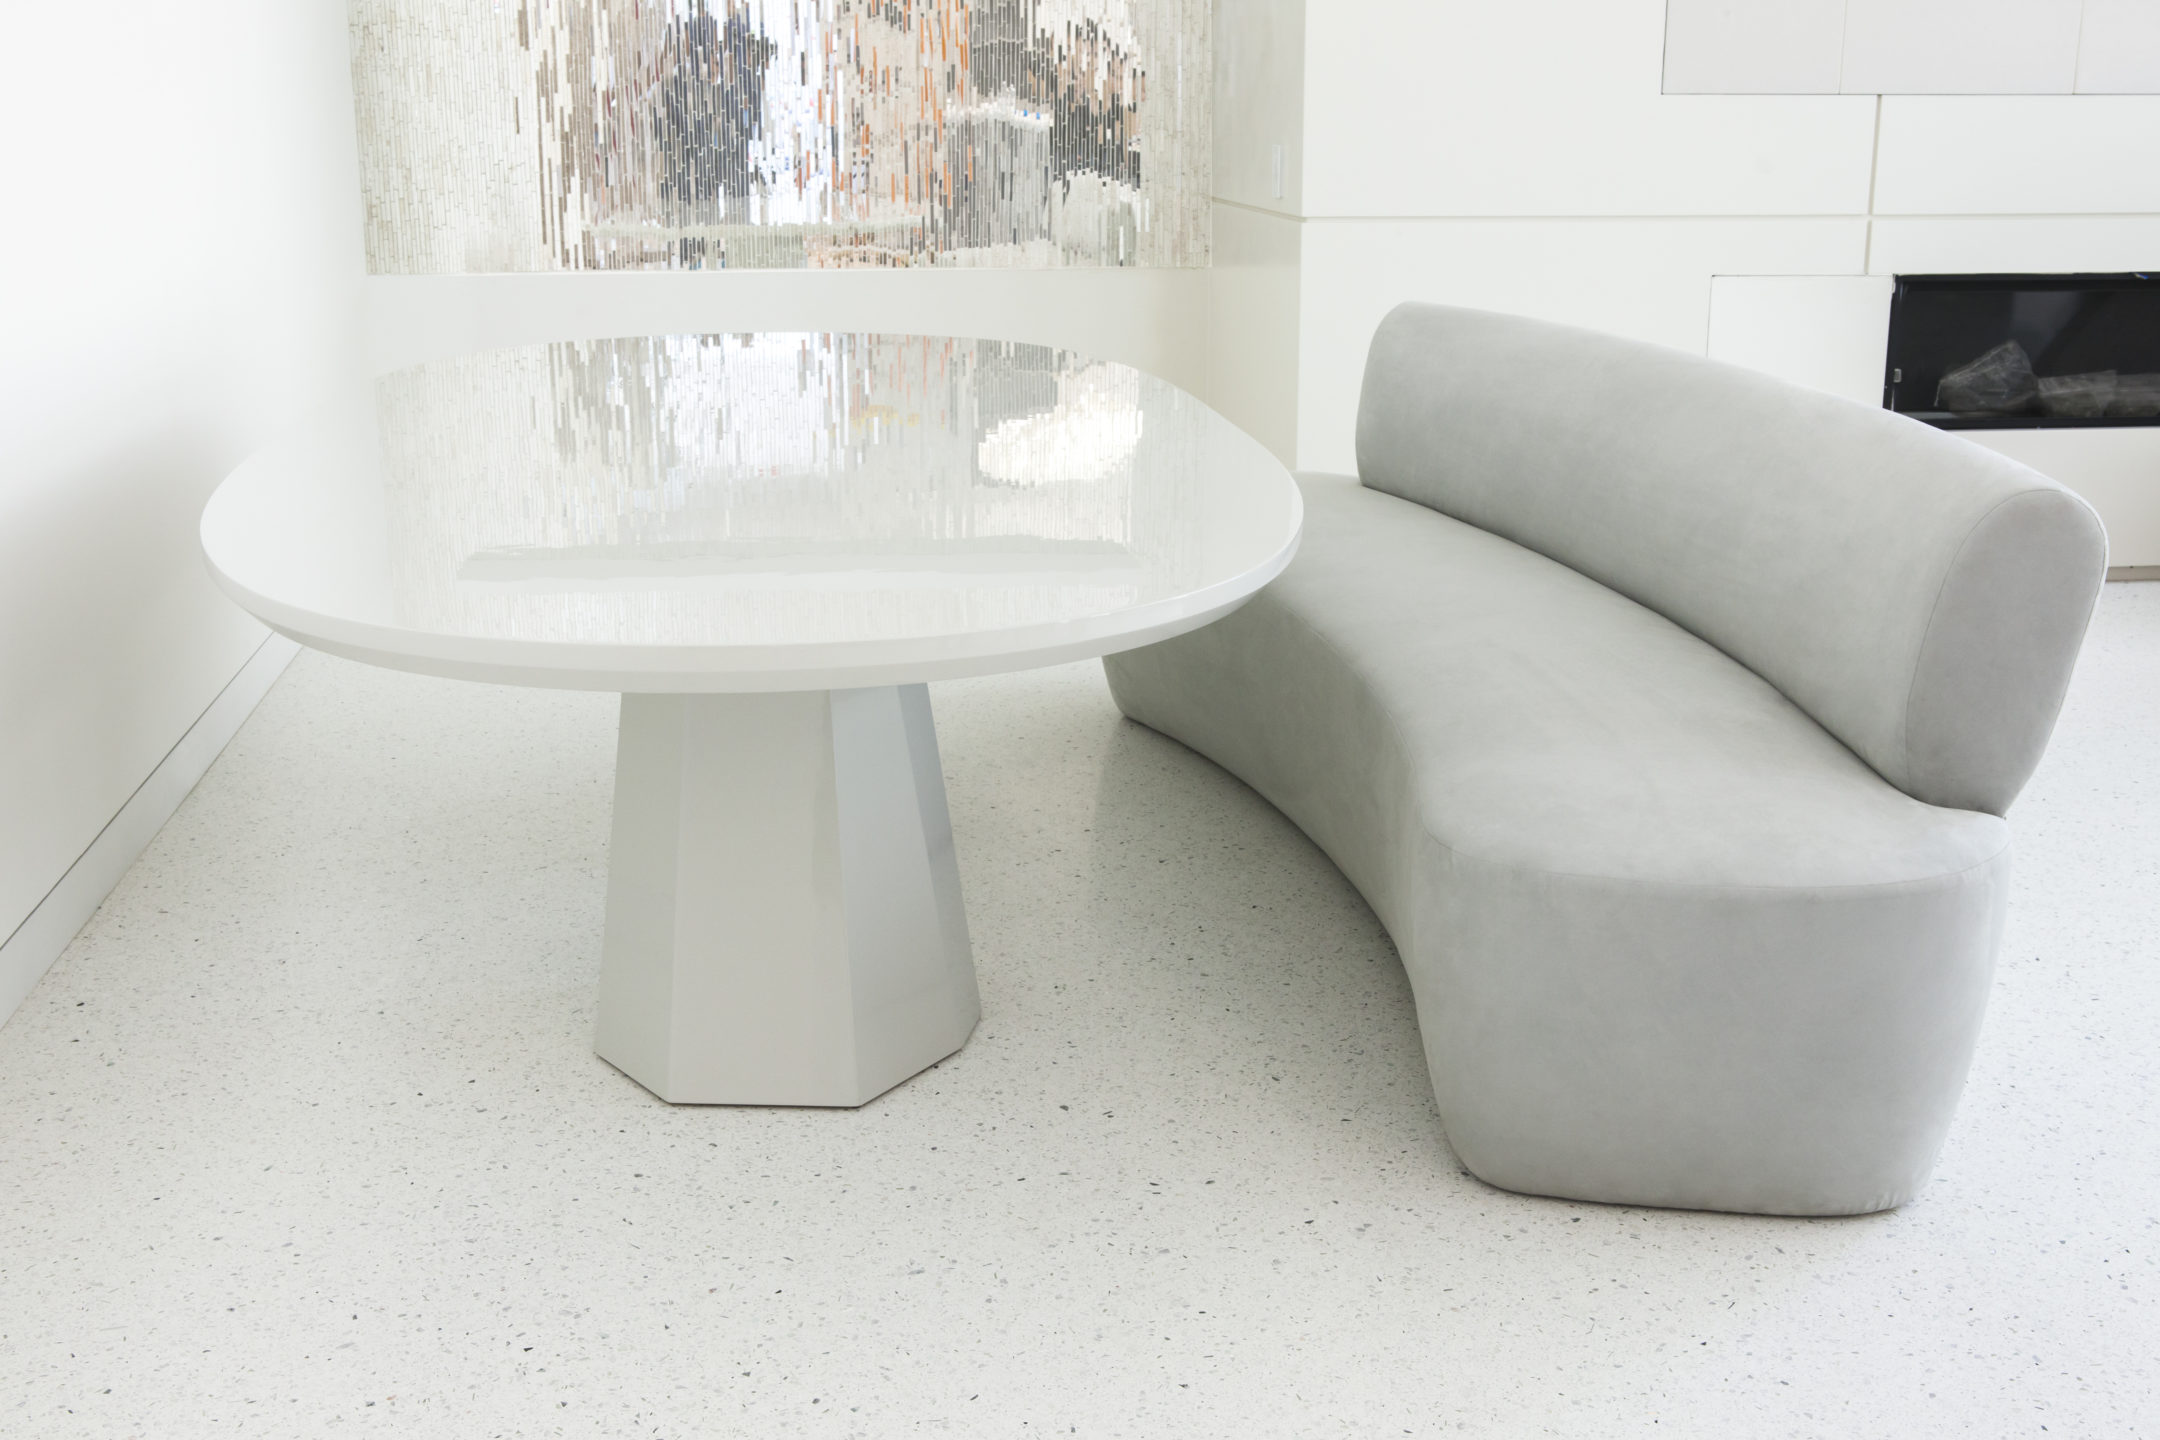 Studio_William_Hefner_products_Lombard_Banquette_Donze_Breakfast Nook_Table and Couch